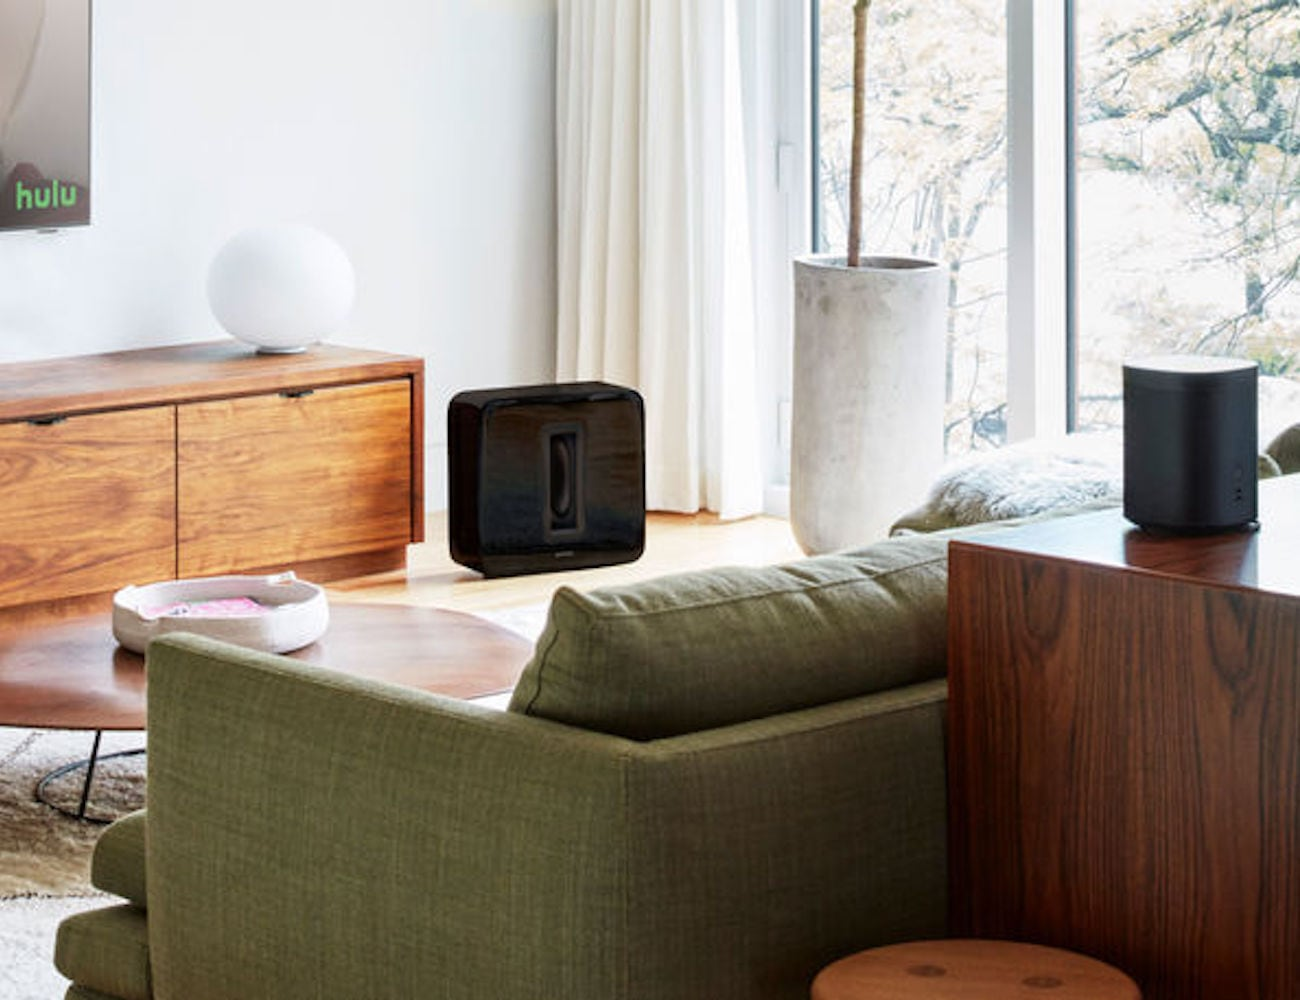 Sonos One Gen 2 Voice Control Smart Speaker plays music in many ways